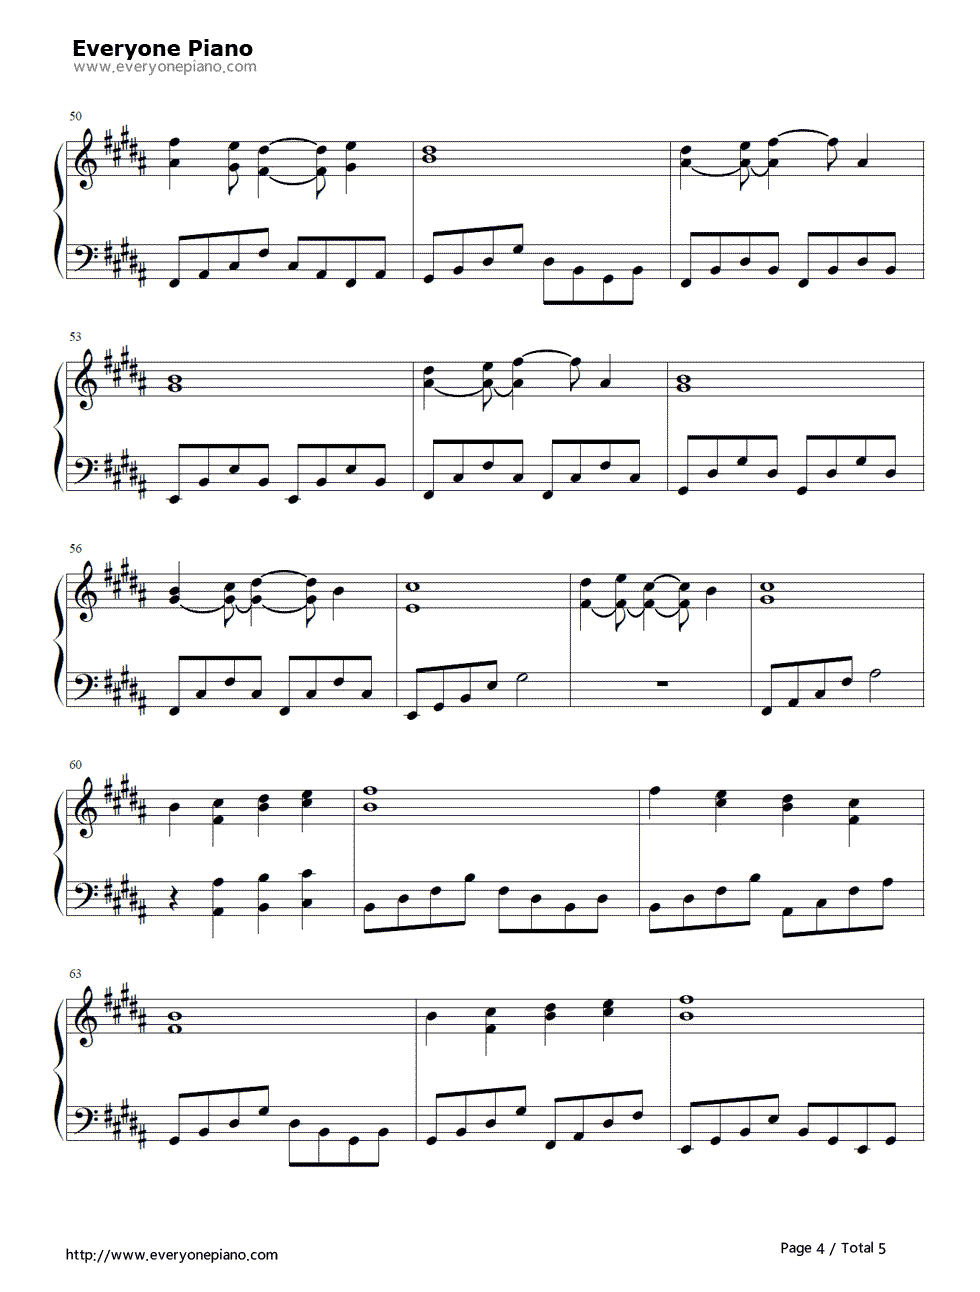 Anime sheet music butler ii anime stave preview 4 free piano butler ii anime stave preview 4 free piano hexwebz Image collections